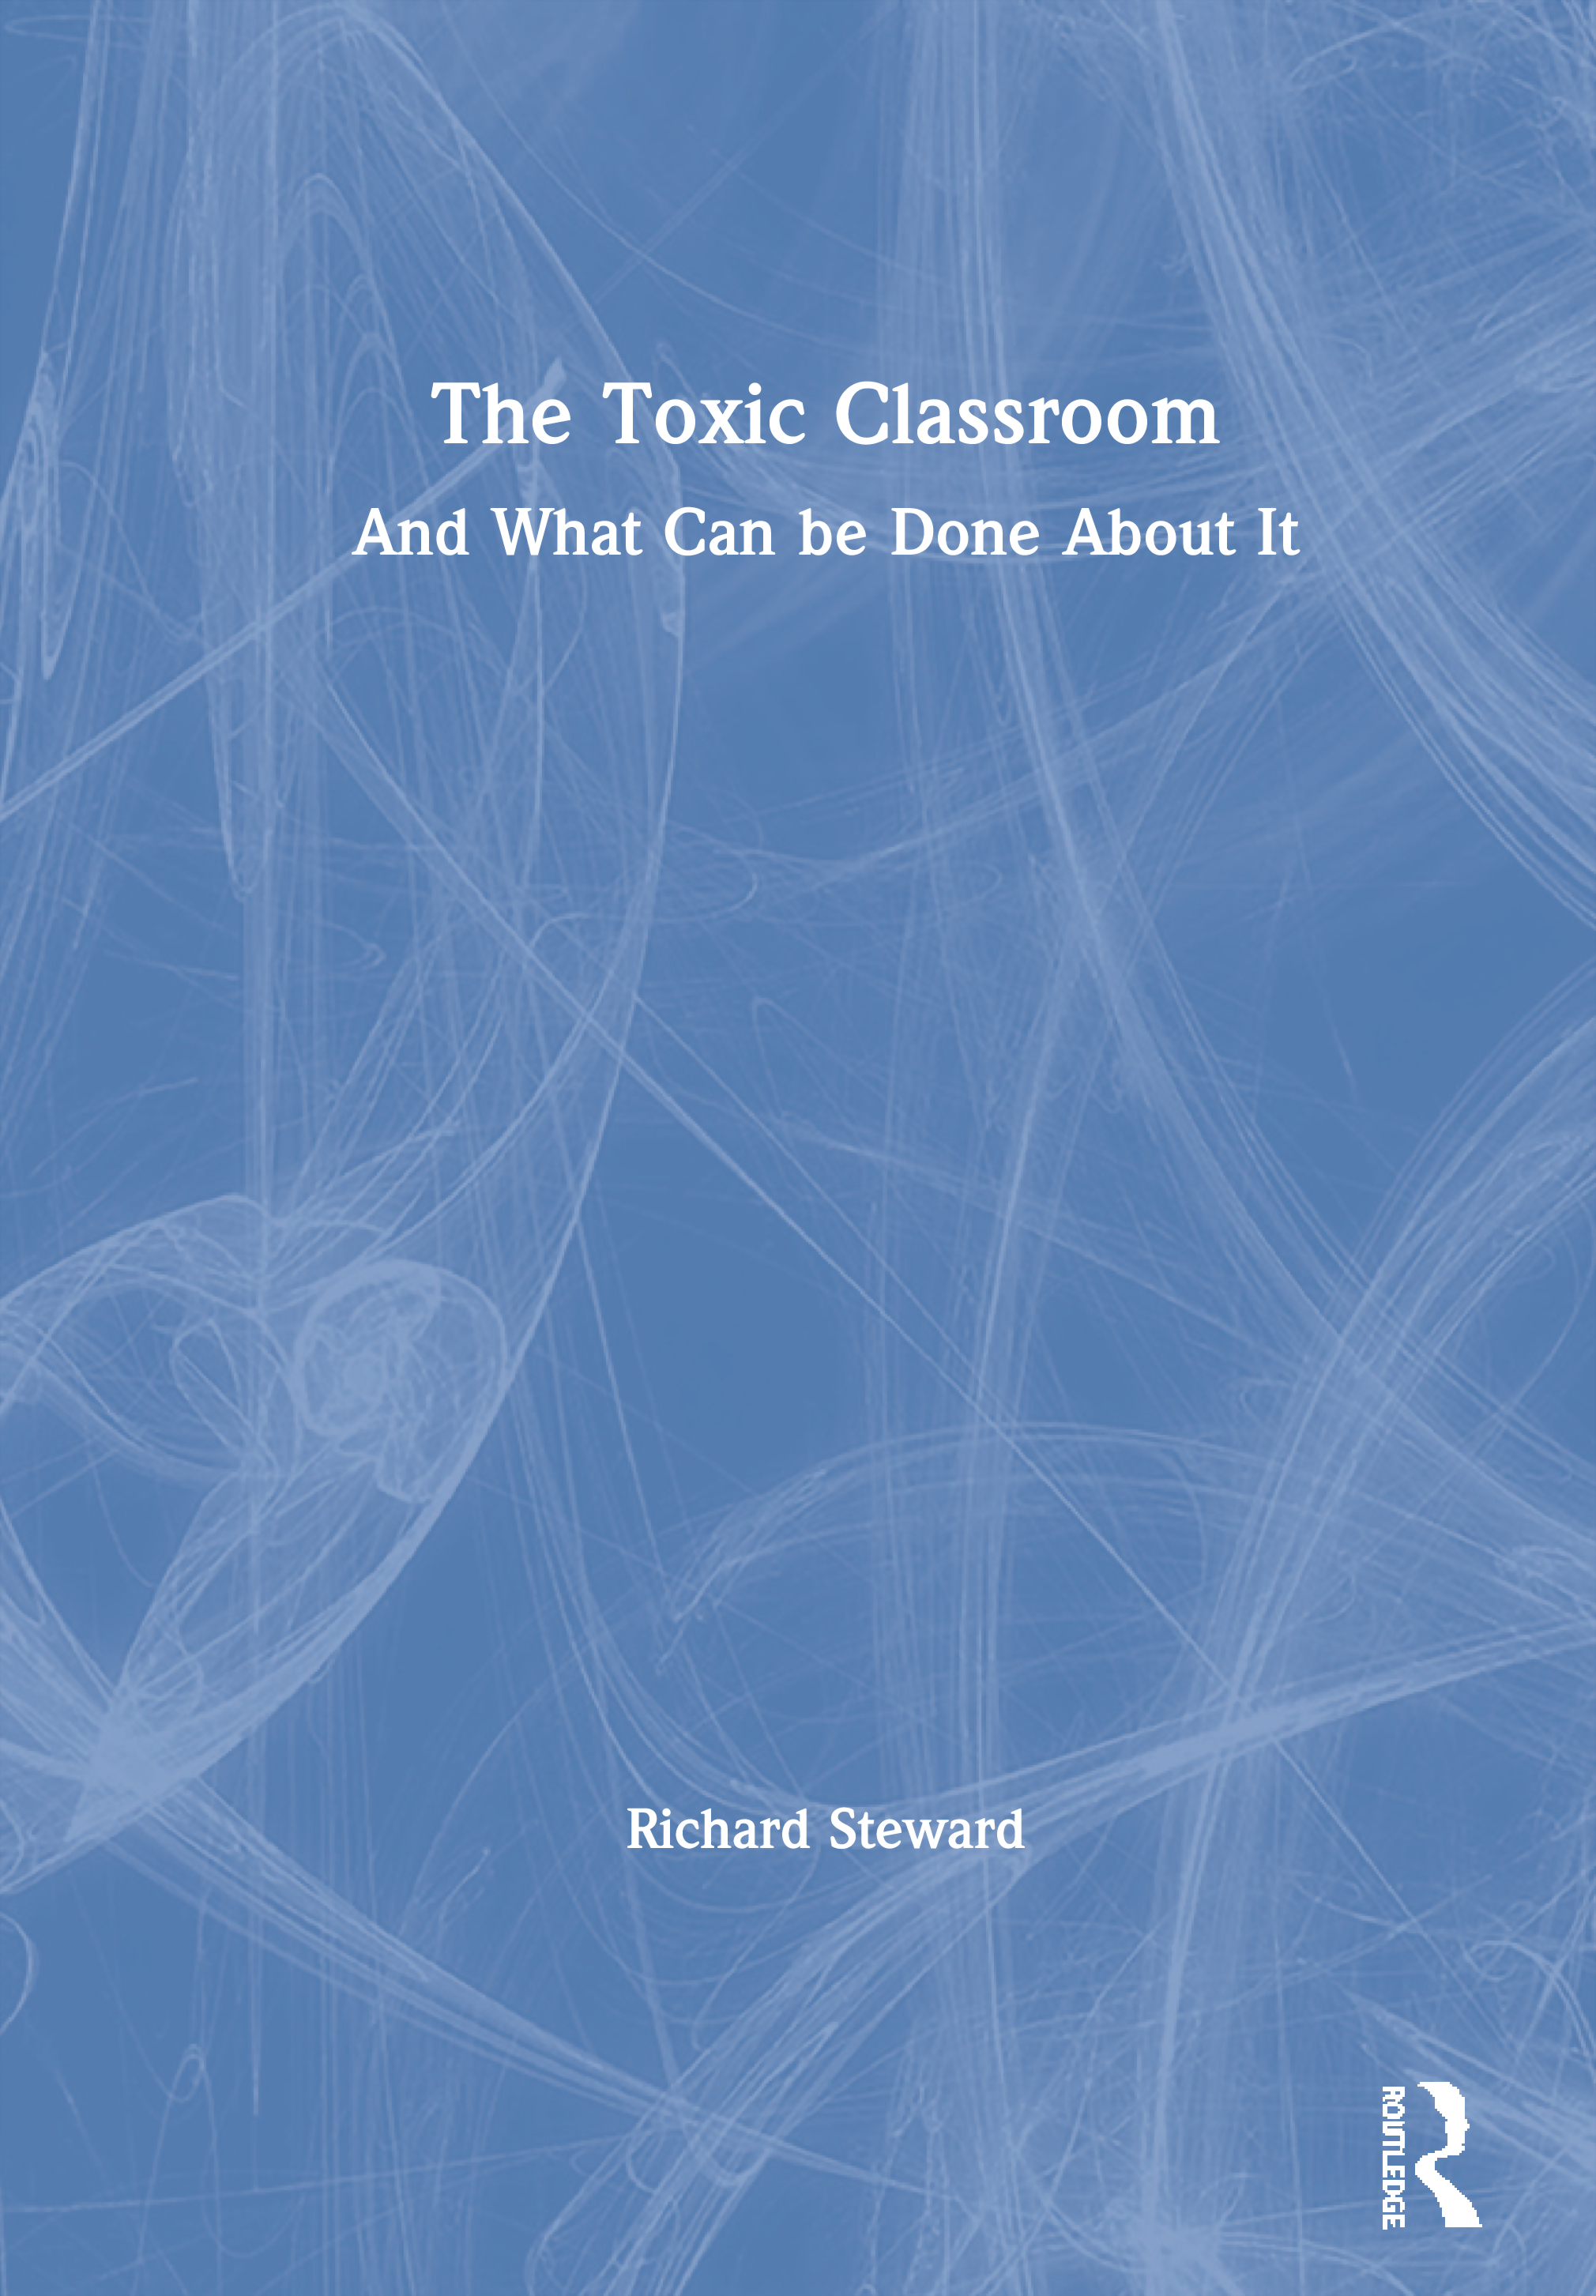 The Toxic Classroom: And What Can be Done About It book cover